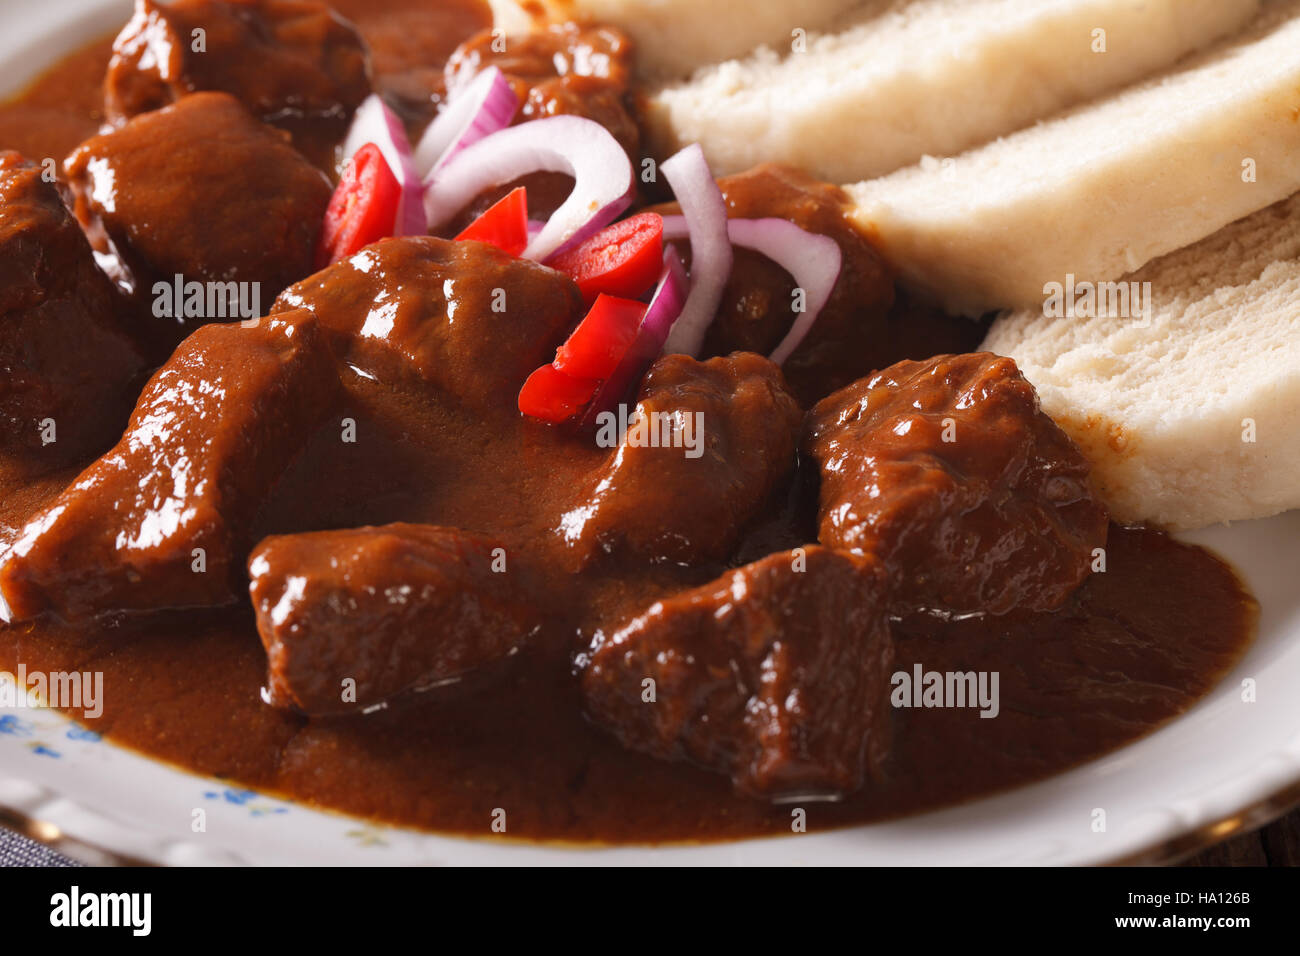 Czech cuisine: beef goulash with Knodel macro on a plate. Horizontal - Stock Image